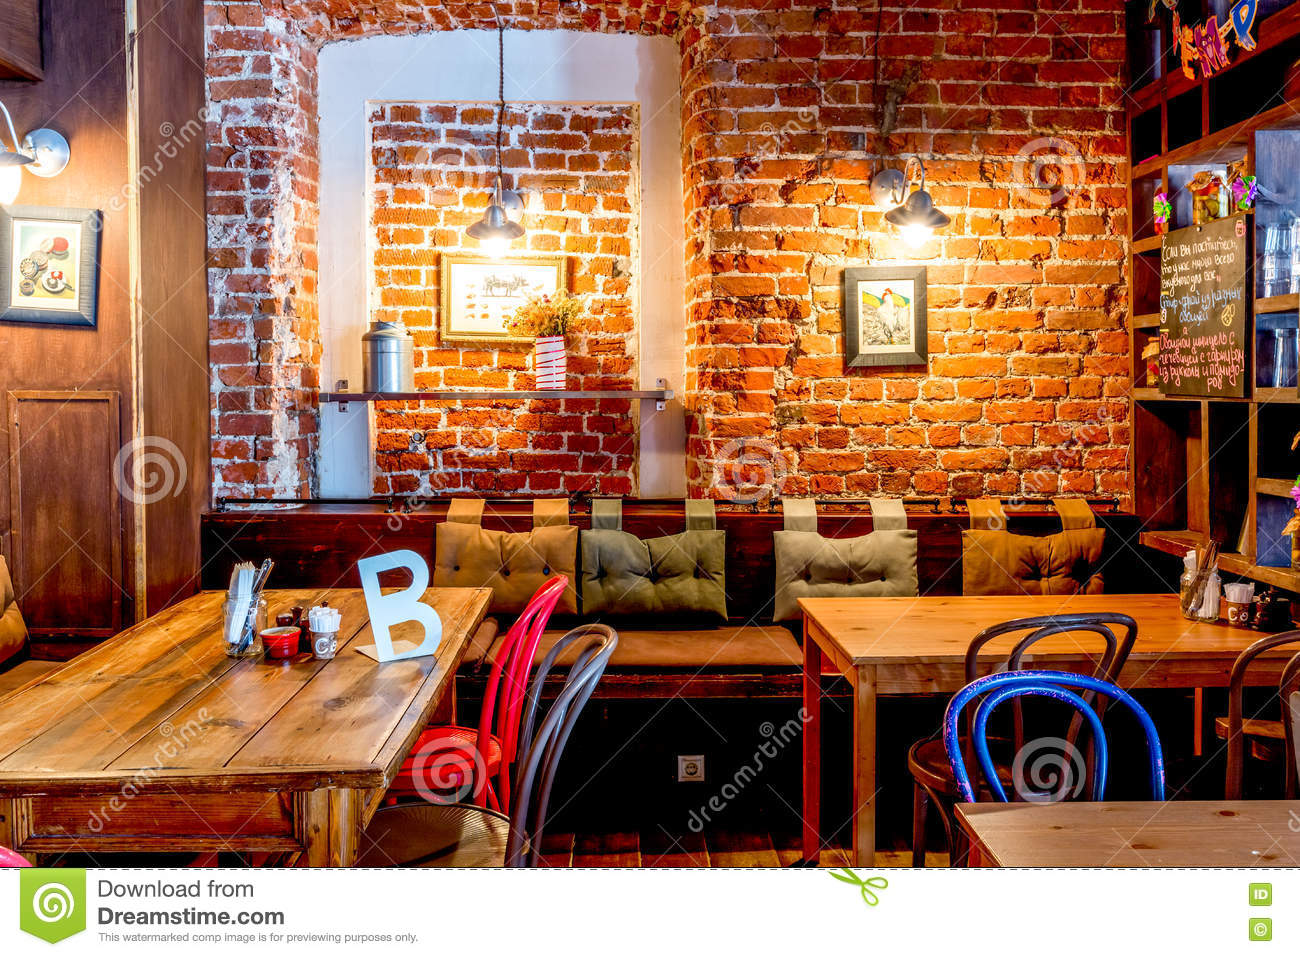 moscow, russia - april 12, 2016: cafe interior brick wall